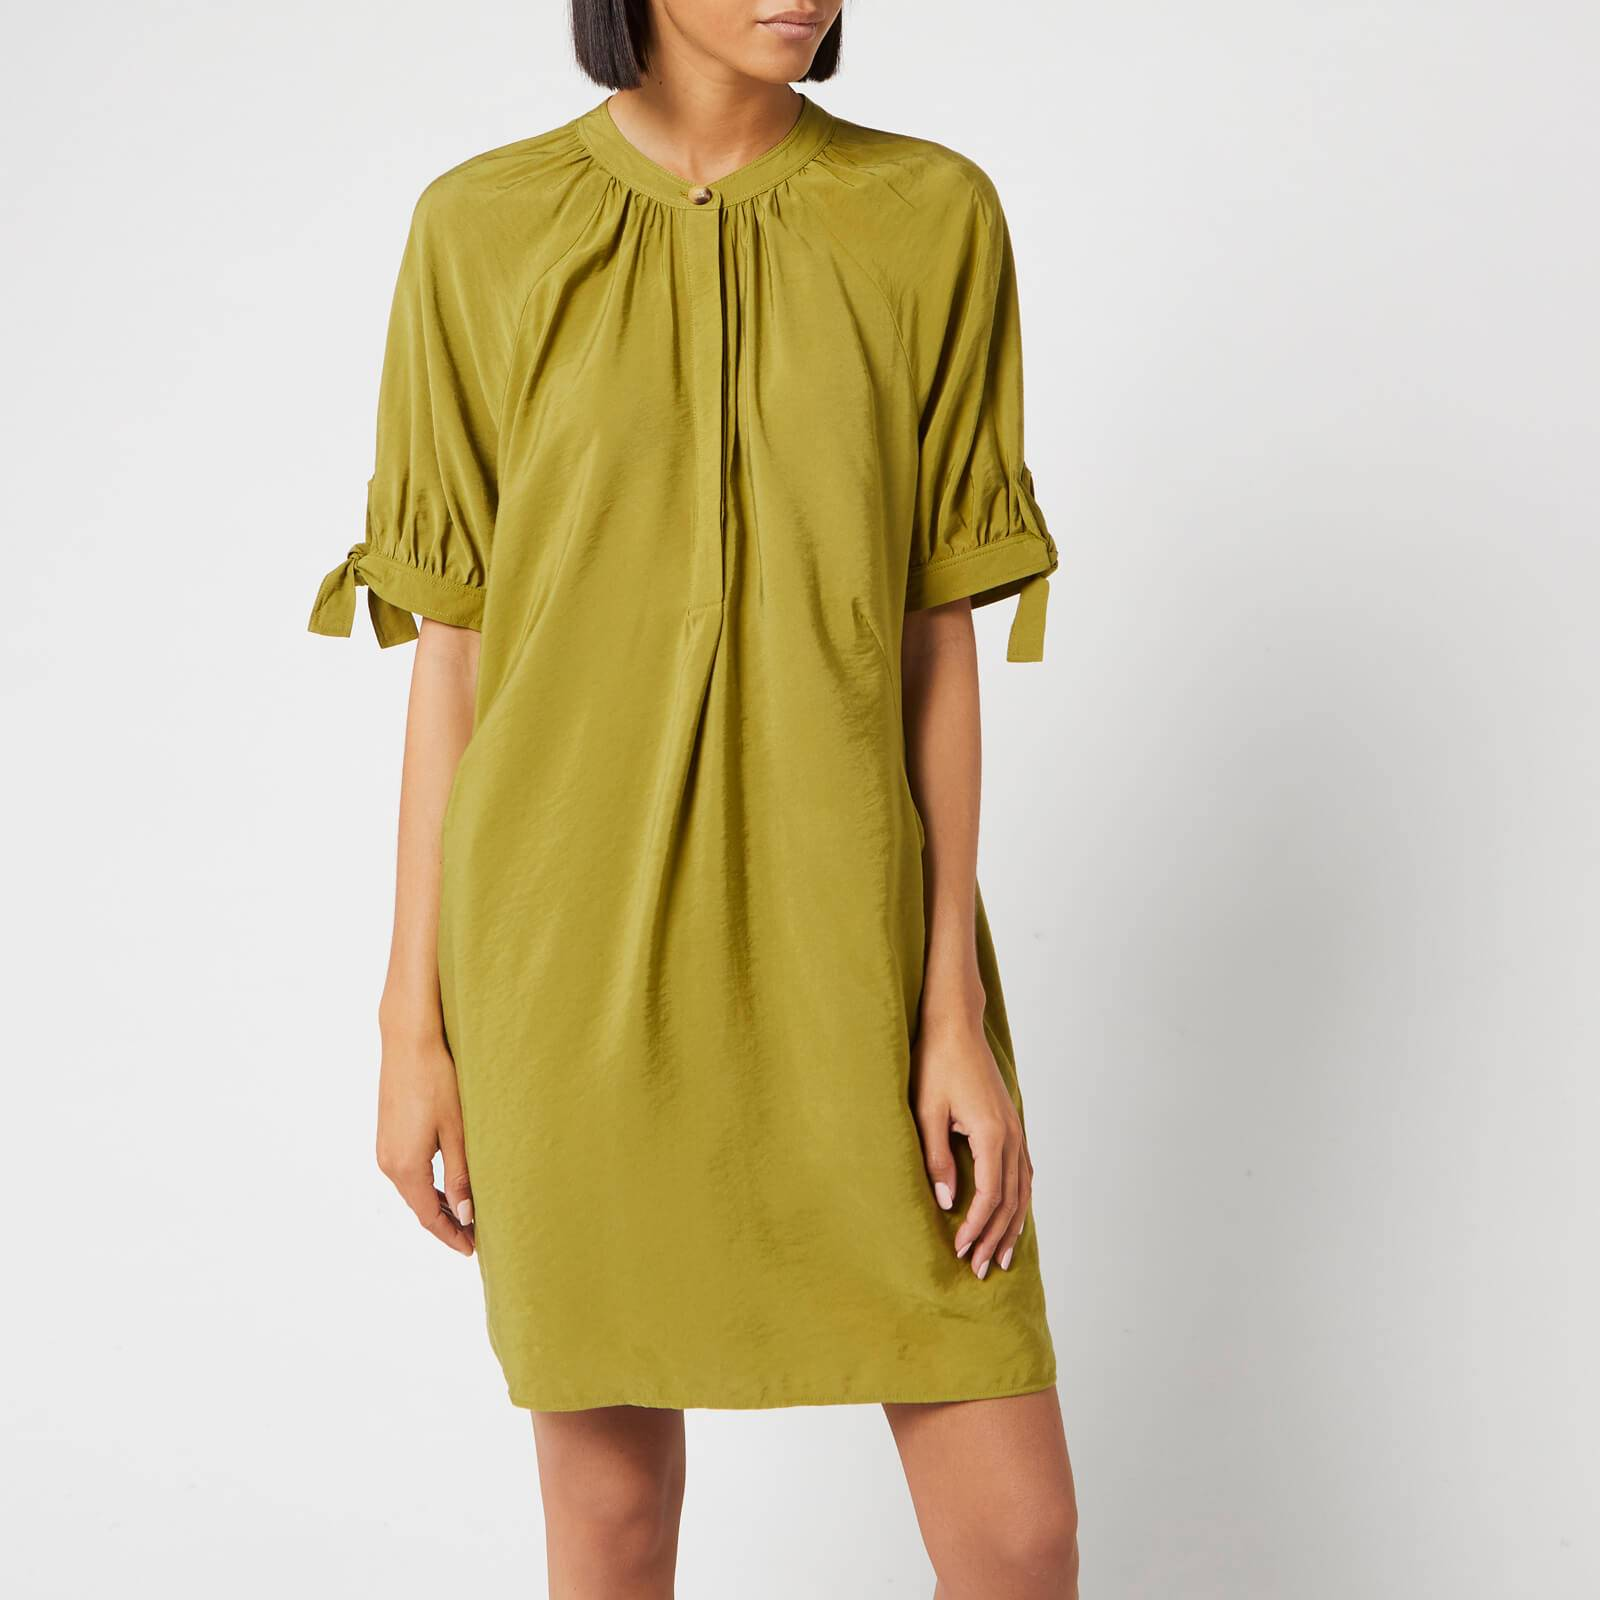 Whistles Women's Celestine Dress - Olive - L - Green